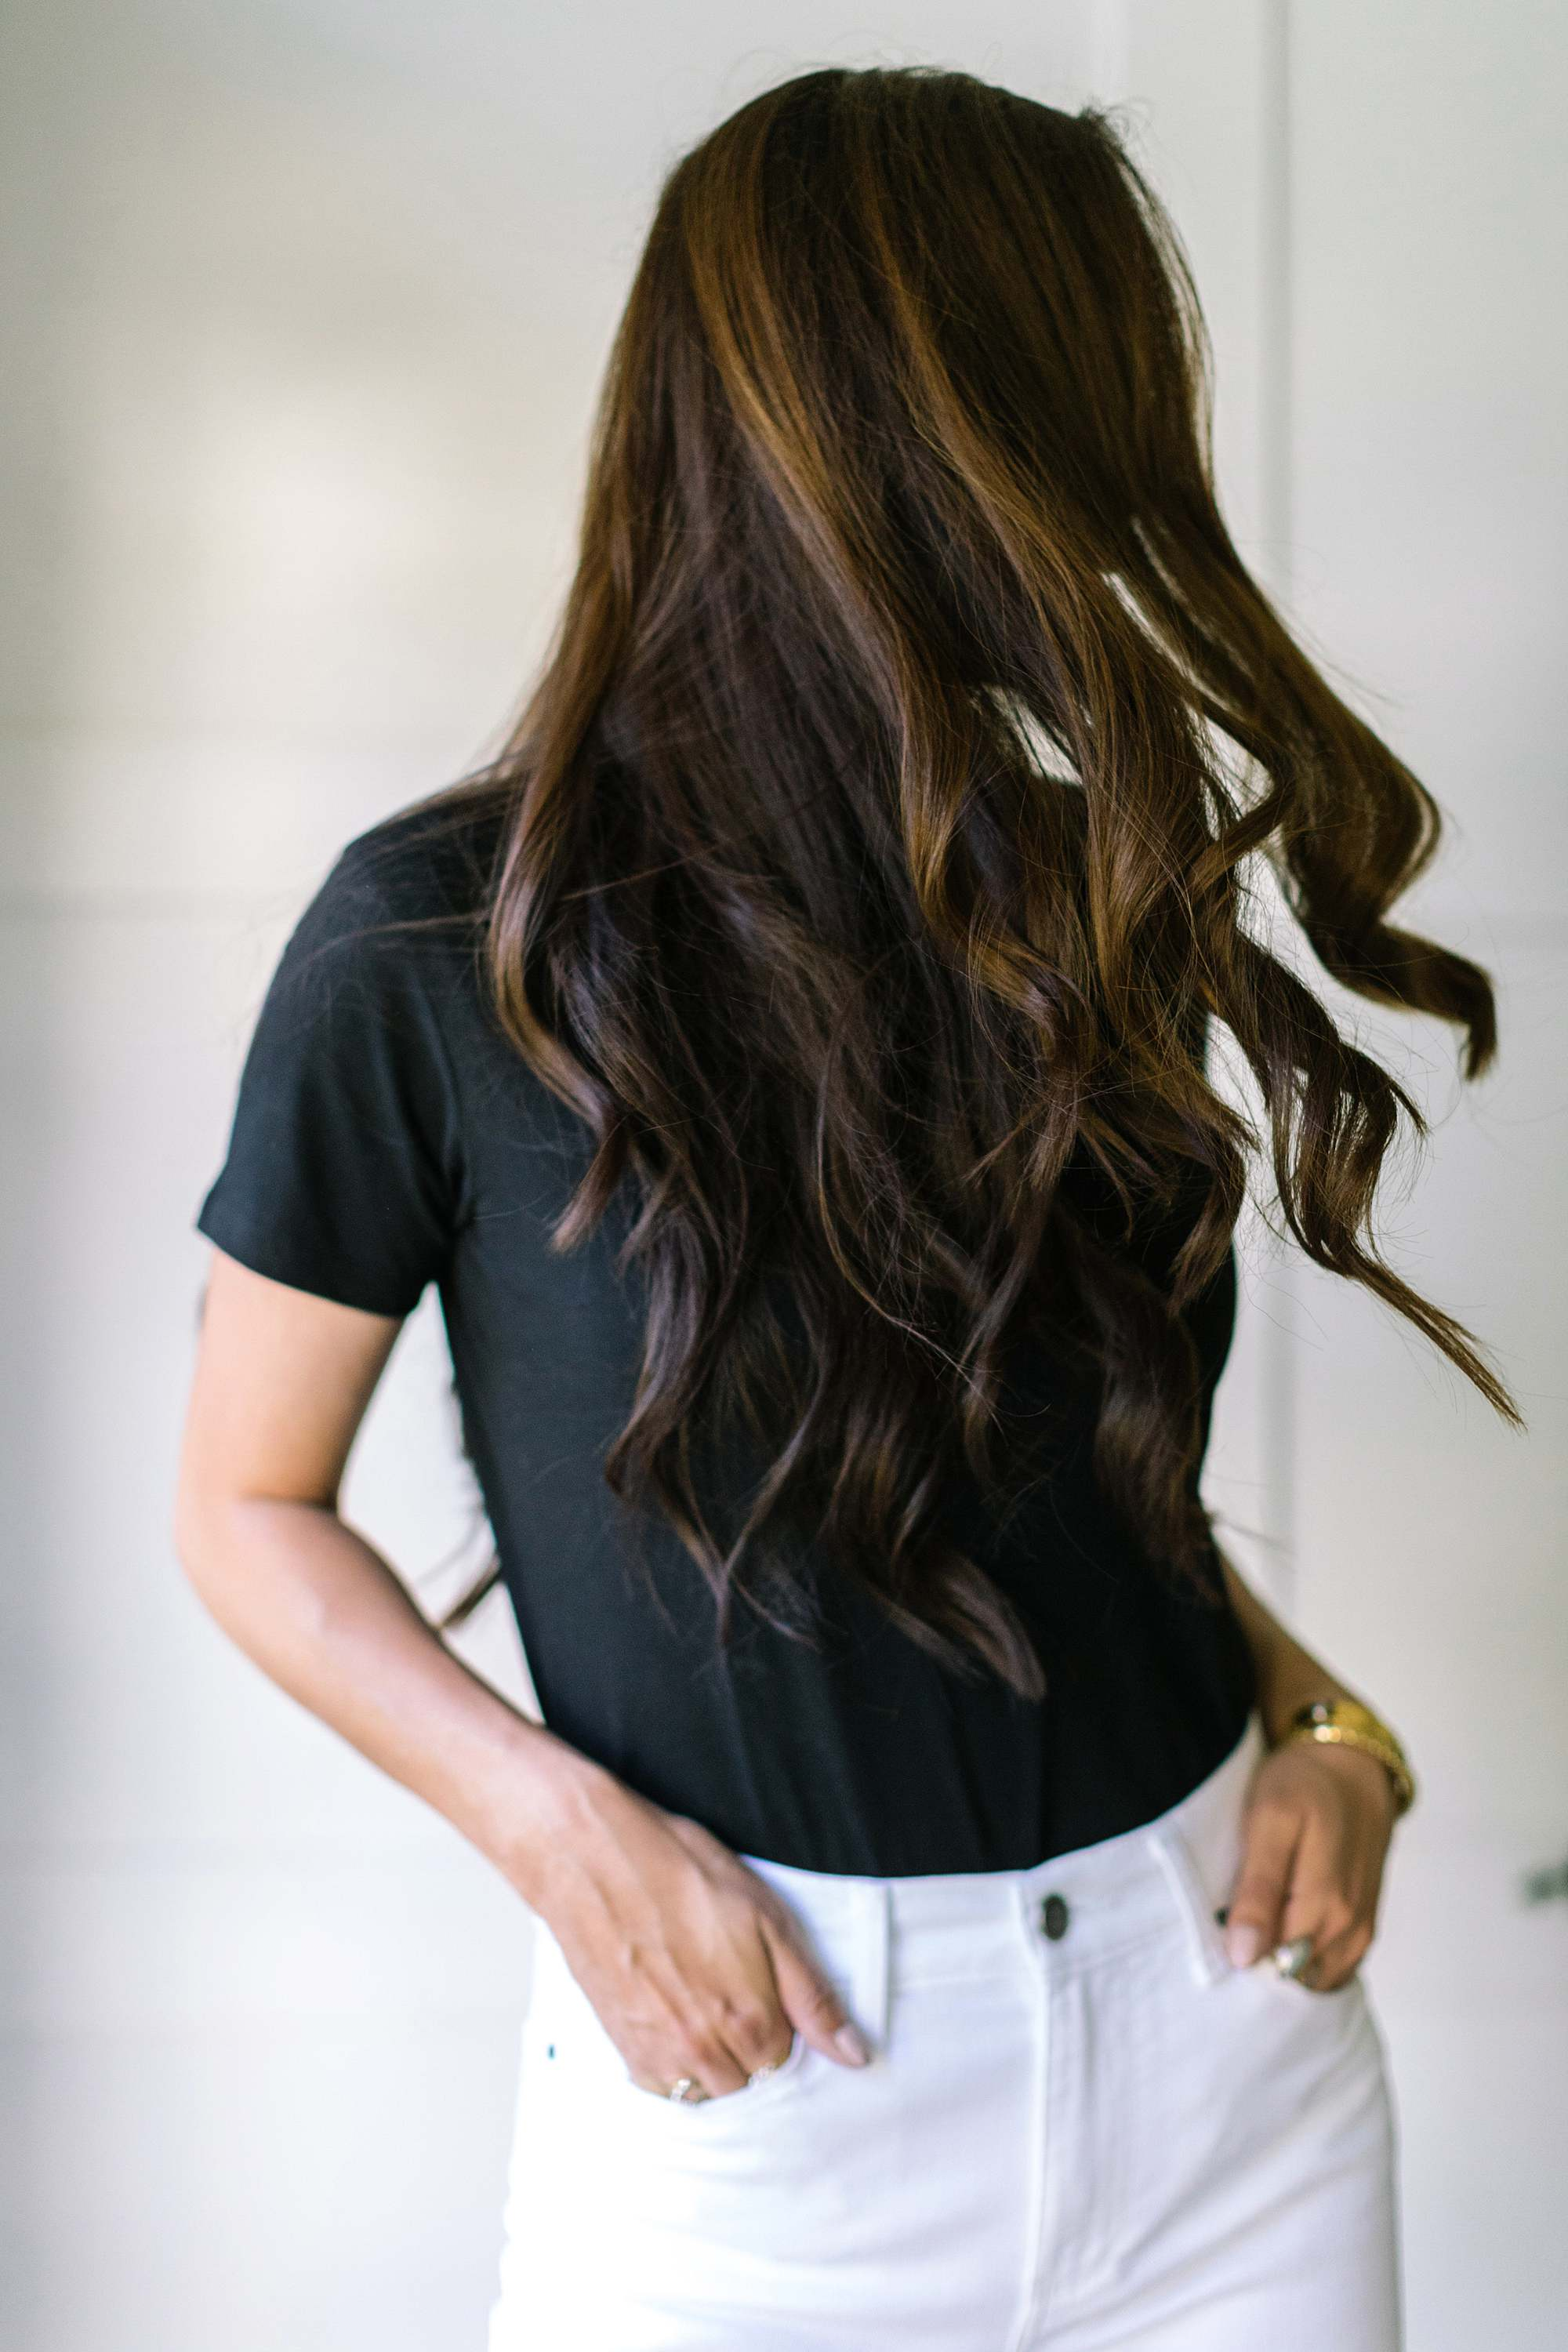 hair swing wearing black top and white jeans